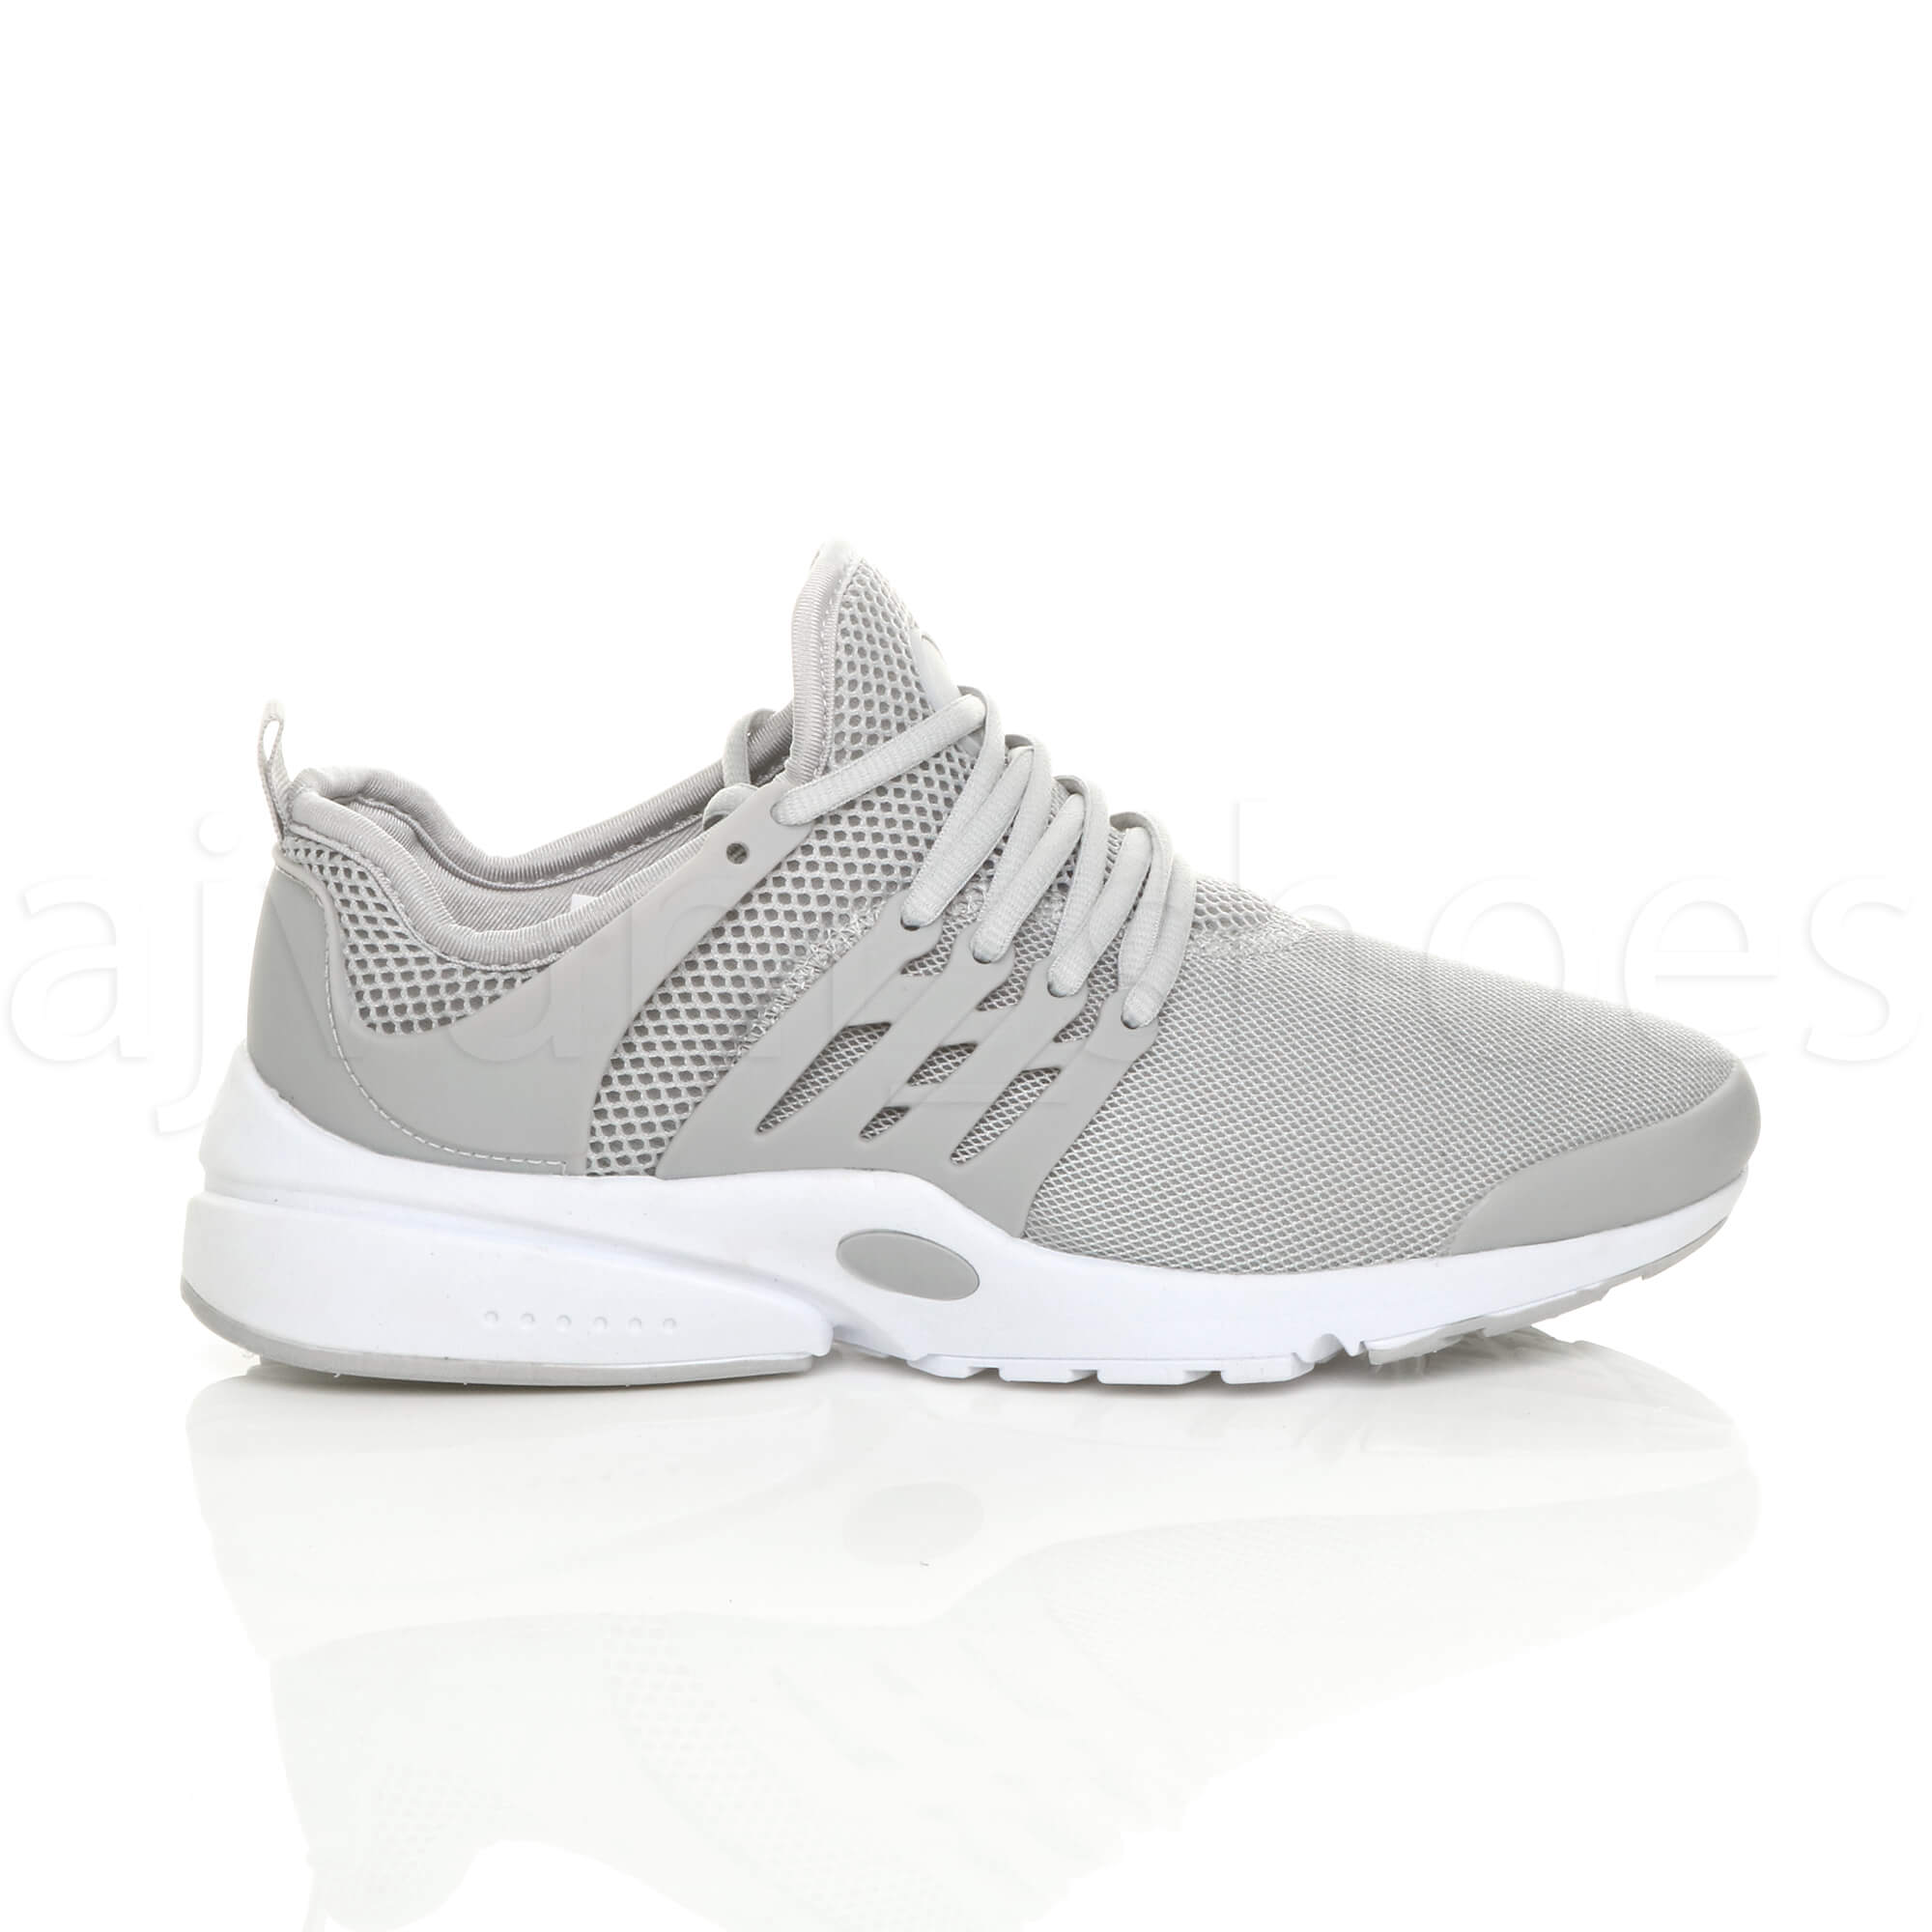 MENS-LACE-UP-SPORTS-GYM-FITNESS-RUNNING-FLEXIBLE-TRAINERS-CASUAL-SNEAKERS-SIZE thumbnail 19